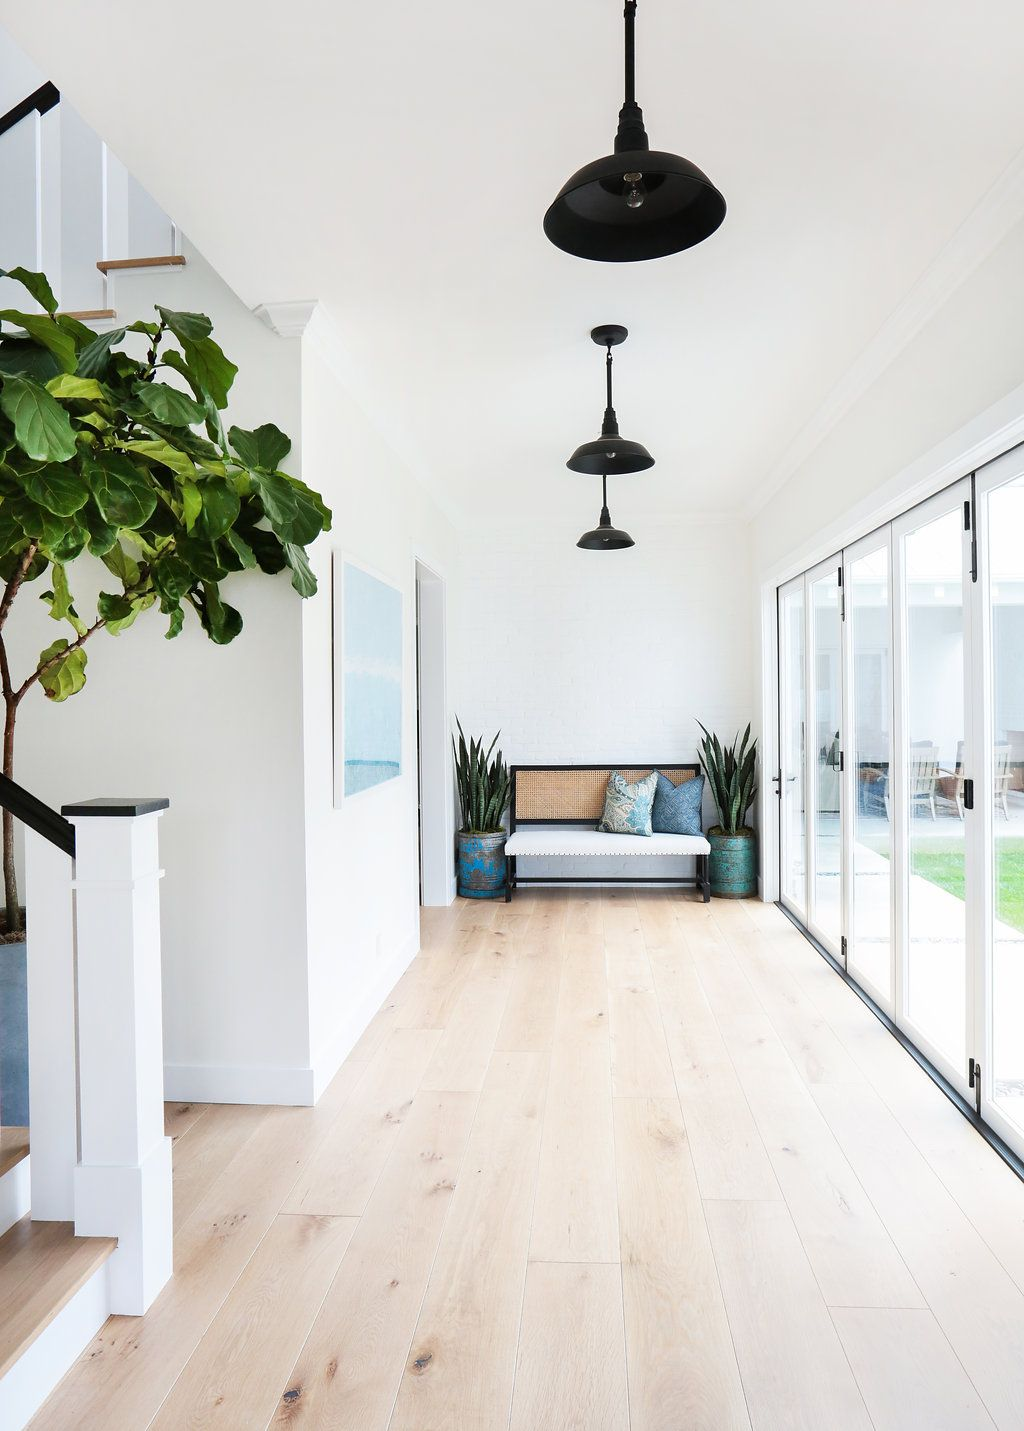 Modern farmhouse in newport beach by blackband design hardwood floors wide plank light wood flooring